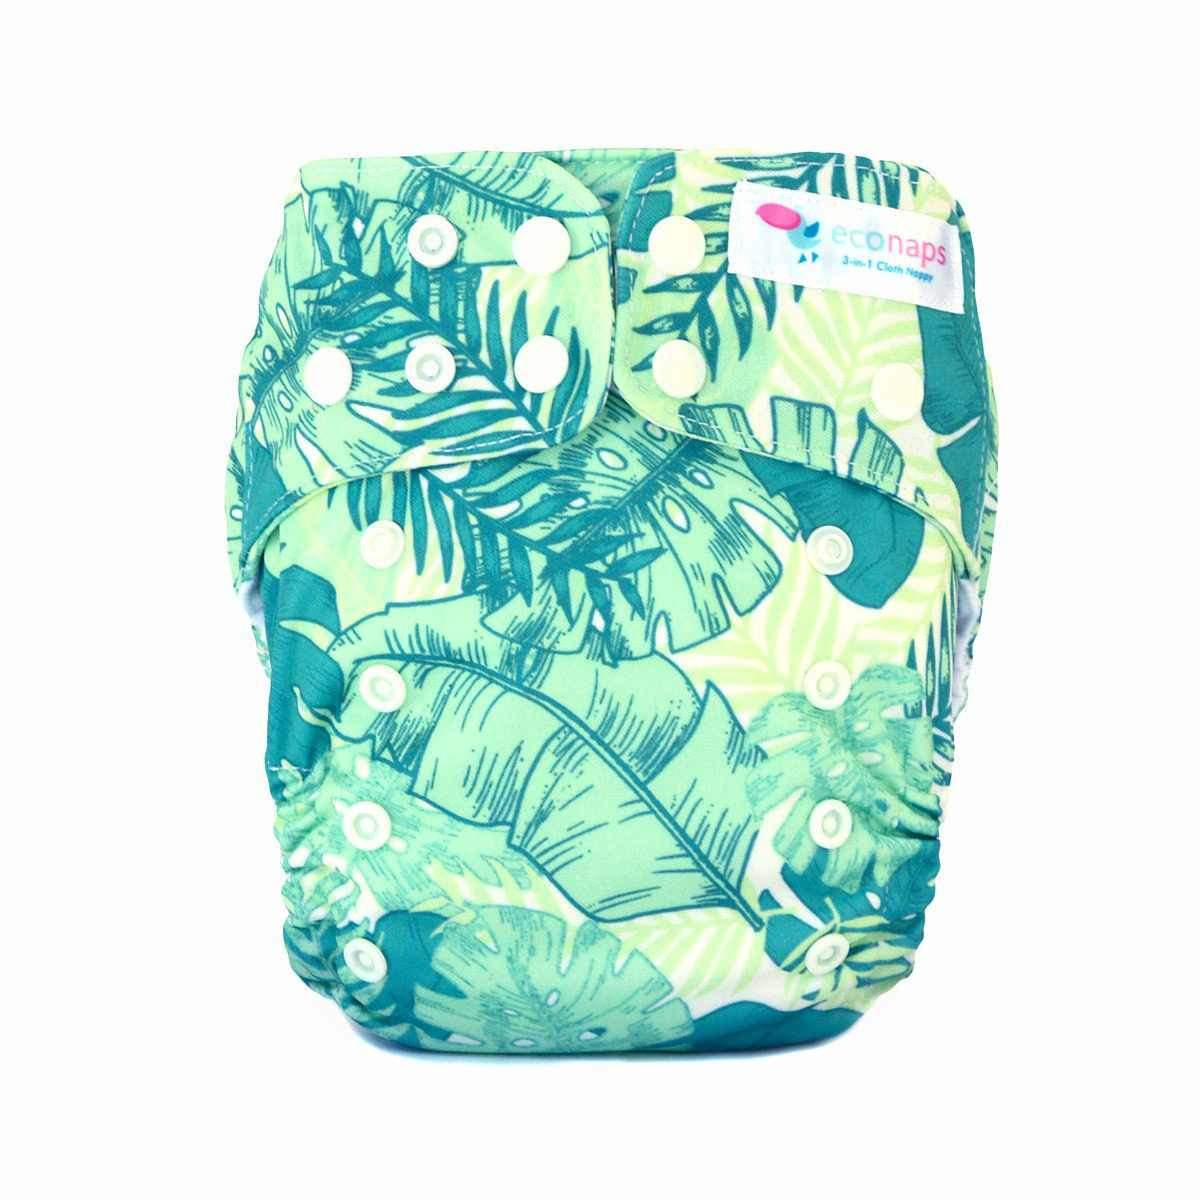 EcoNaps Cloth Nappy, Tropical Palms